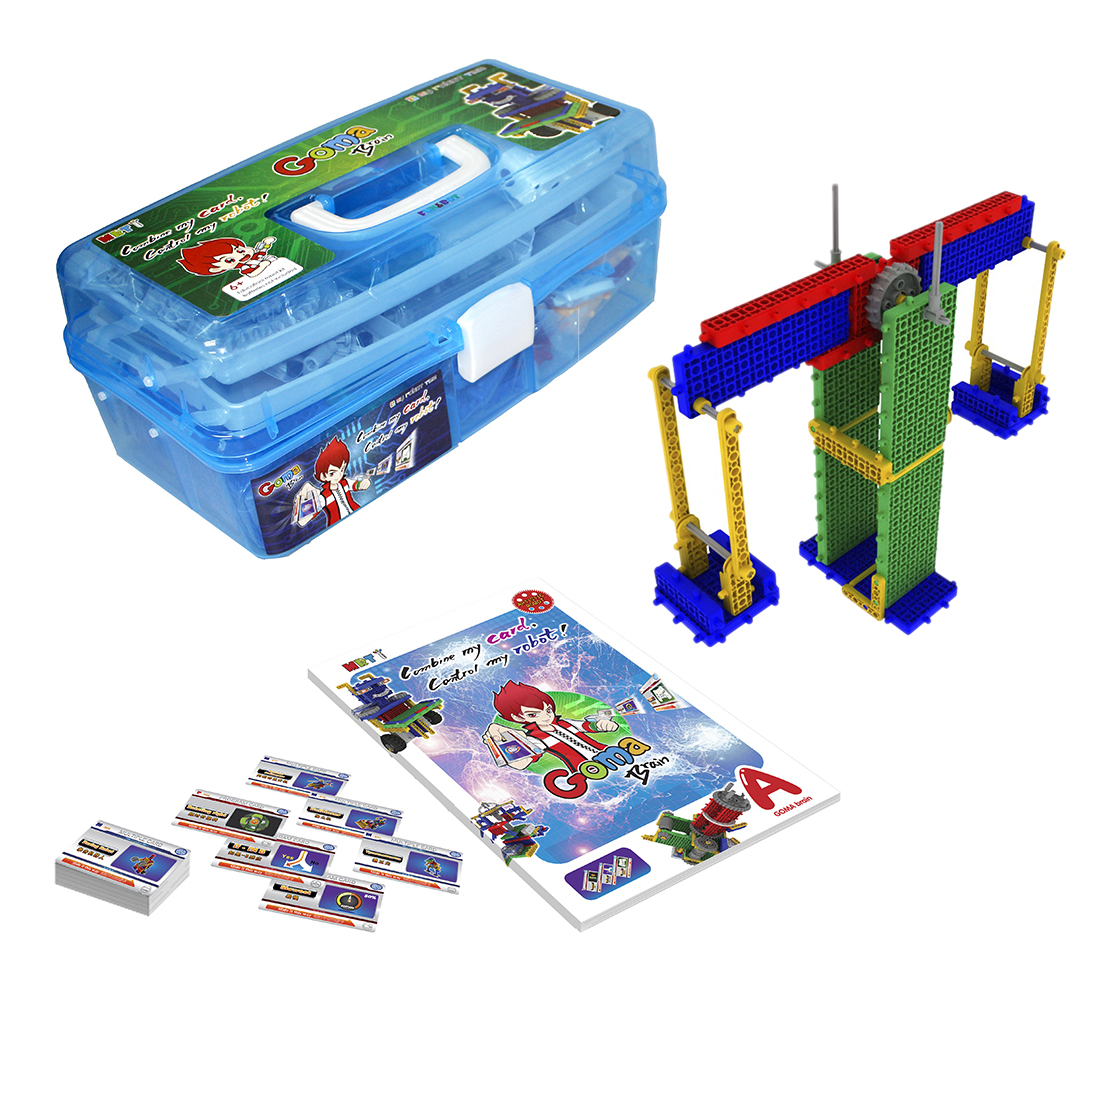 MRT 1-Brain A Colorful Robots Building Block Kit Assembly Educational Robot Toy For Beginner 6-8 Years Old Model Building Figure